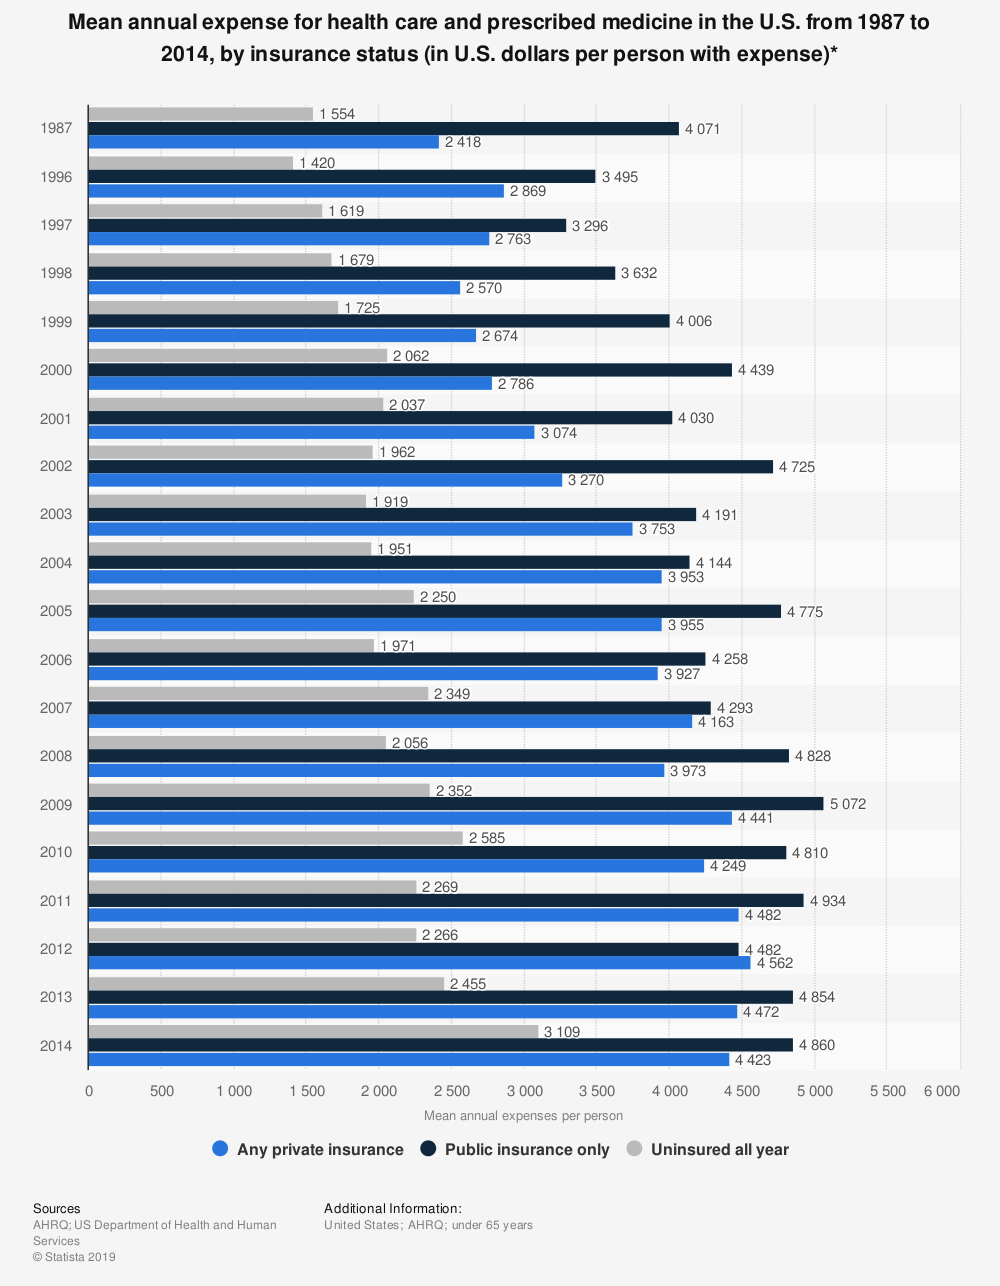 Statistic: Mean annual expense for health care and prescribed medicine in the U.S. from 1987 to 2014, by insurance status (in U.S. dollars per person with expense)* | Statista